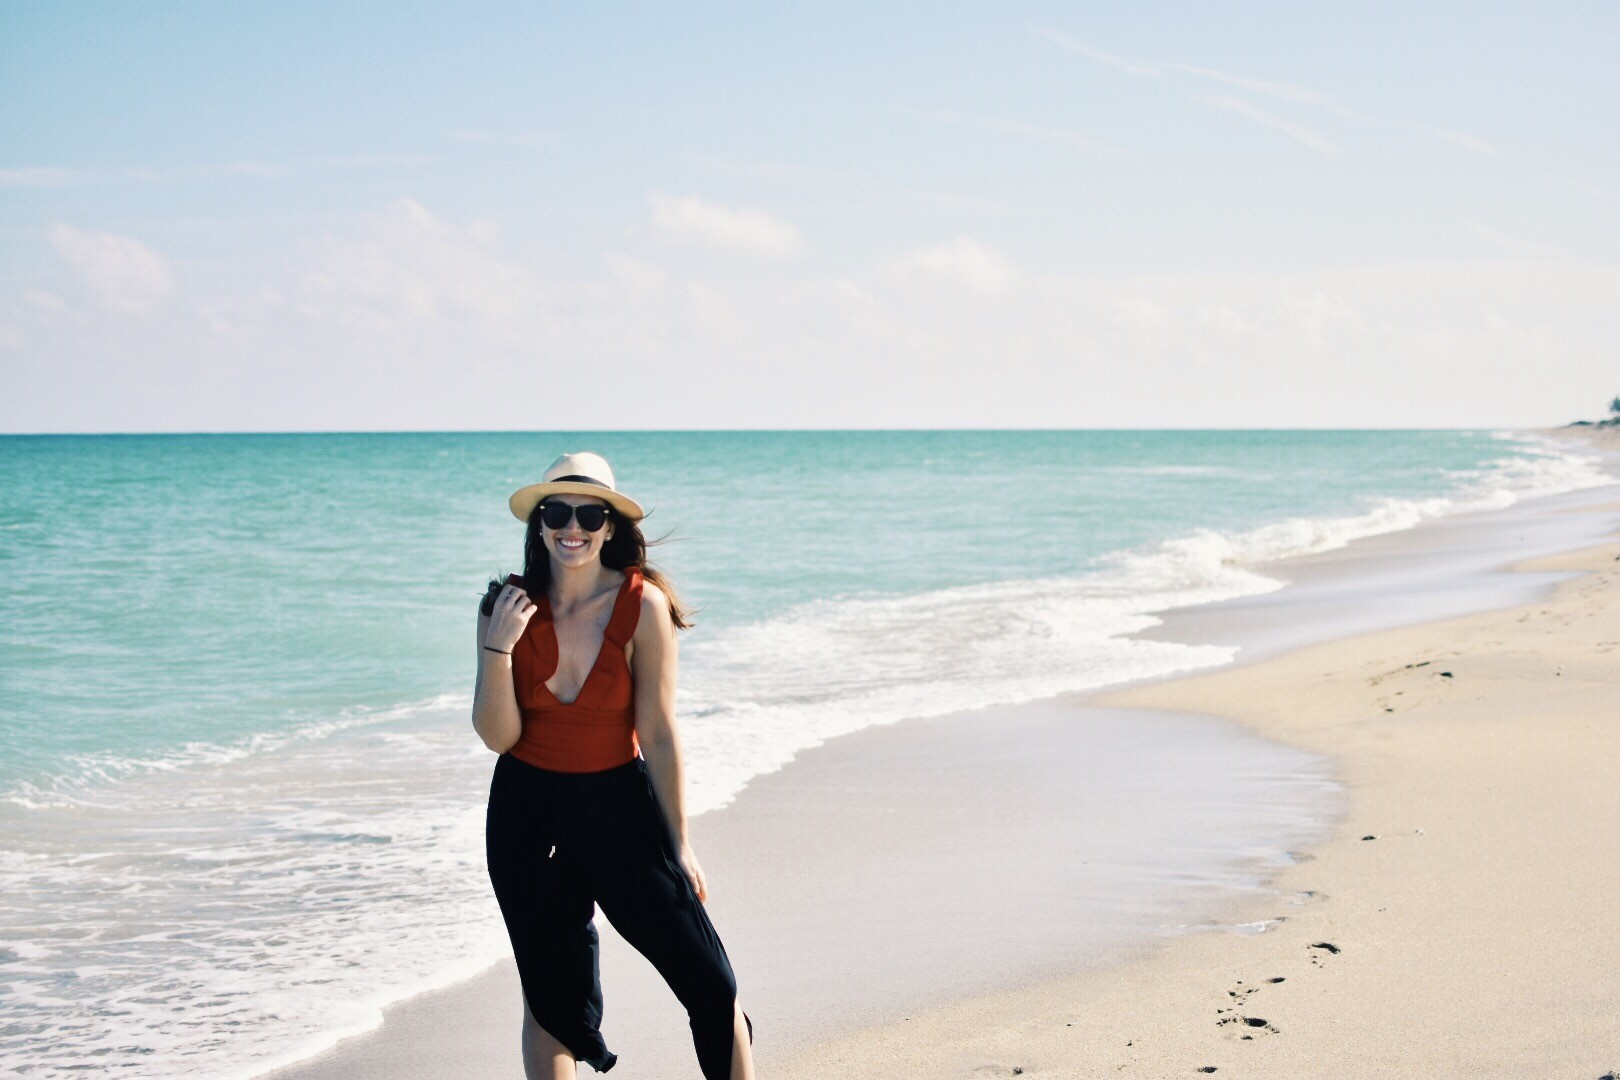 jess burke well layered minneapolis personal stylist how to find the perfect swimsuit swimsuit shopping tips finding the perfect swimsuit.jpg